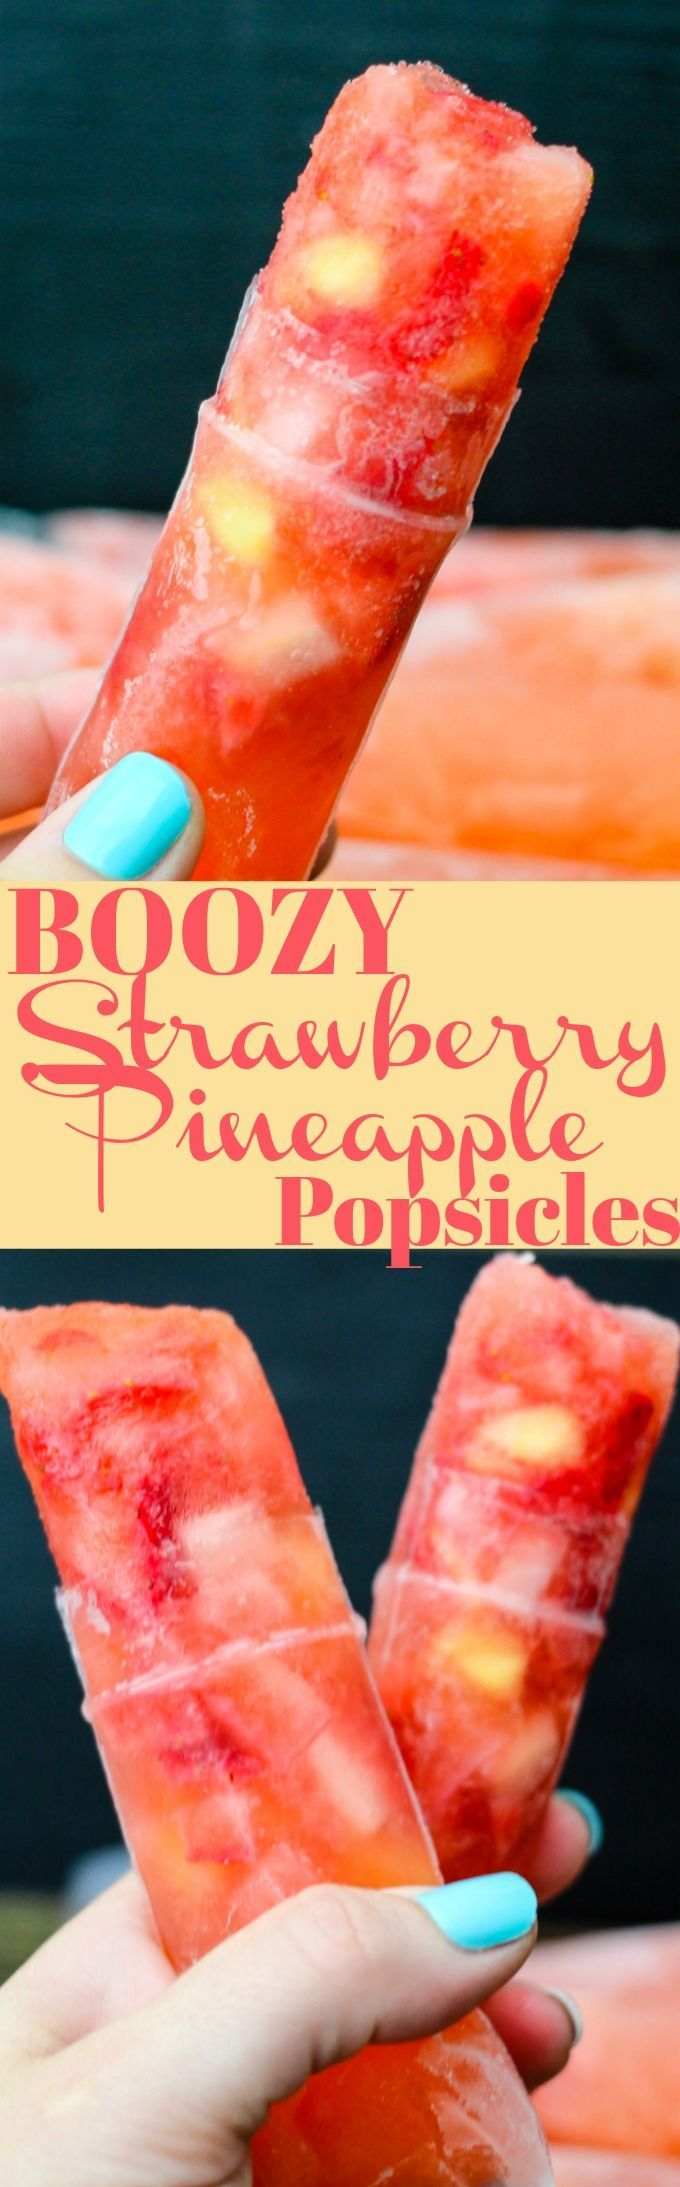 BOOZY Strawberry Pineapple Popsicles are full of fresh ingredients and a kick of rum. Why make traditional cocktails when you can have fun adult popsicles?!